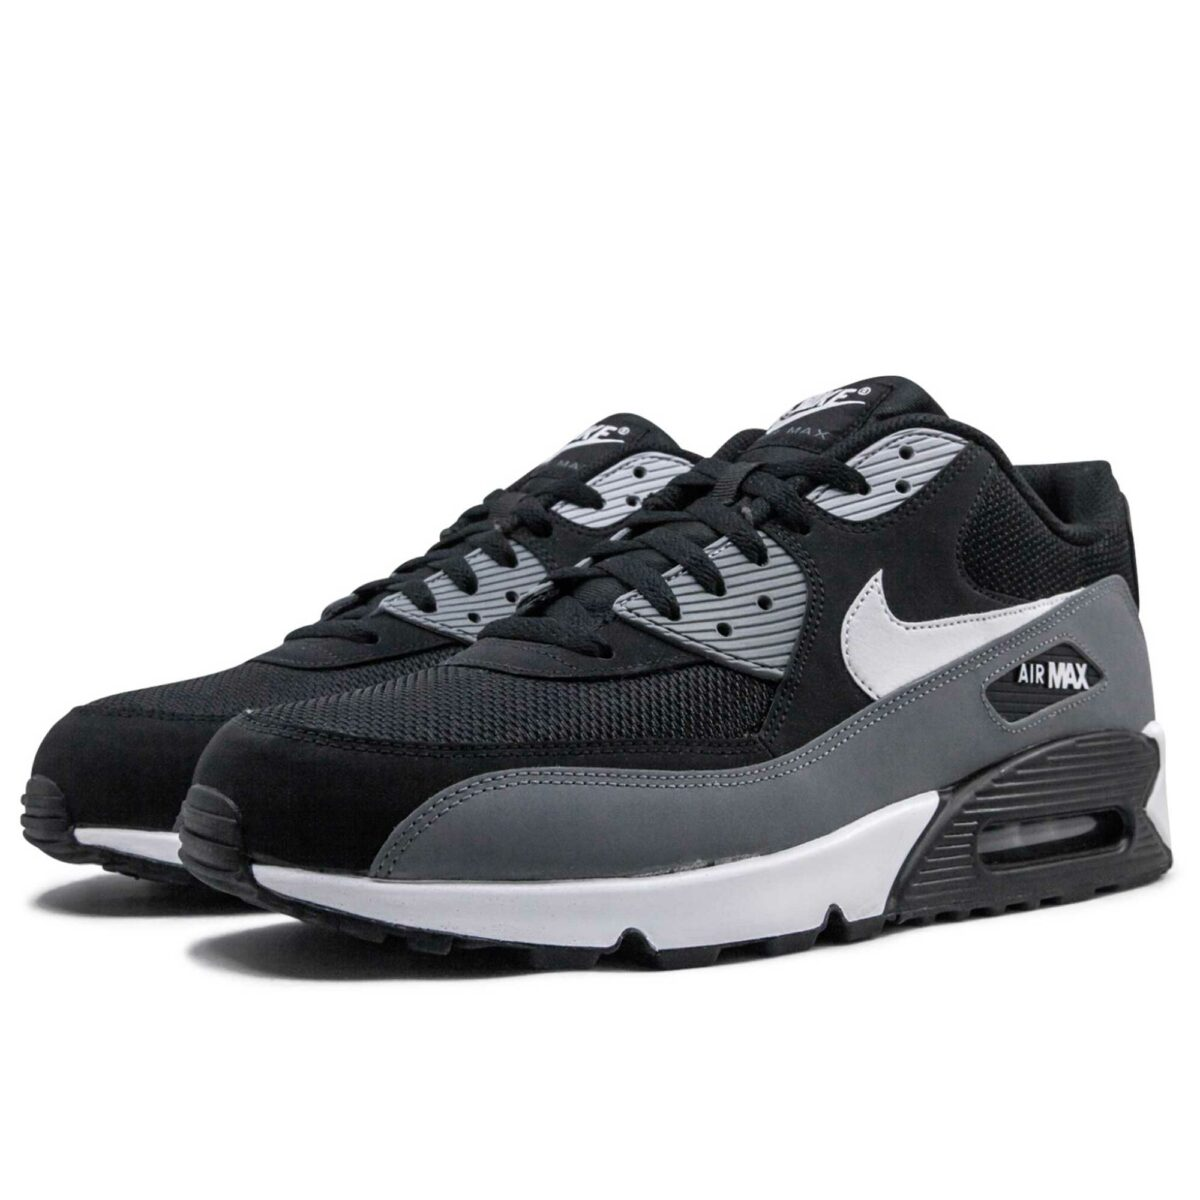 nike air max 90 essential black grey white AJ1285_018 купить